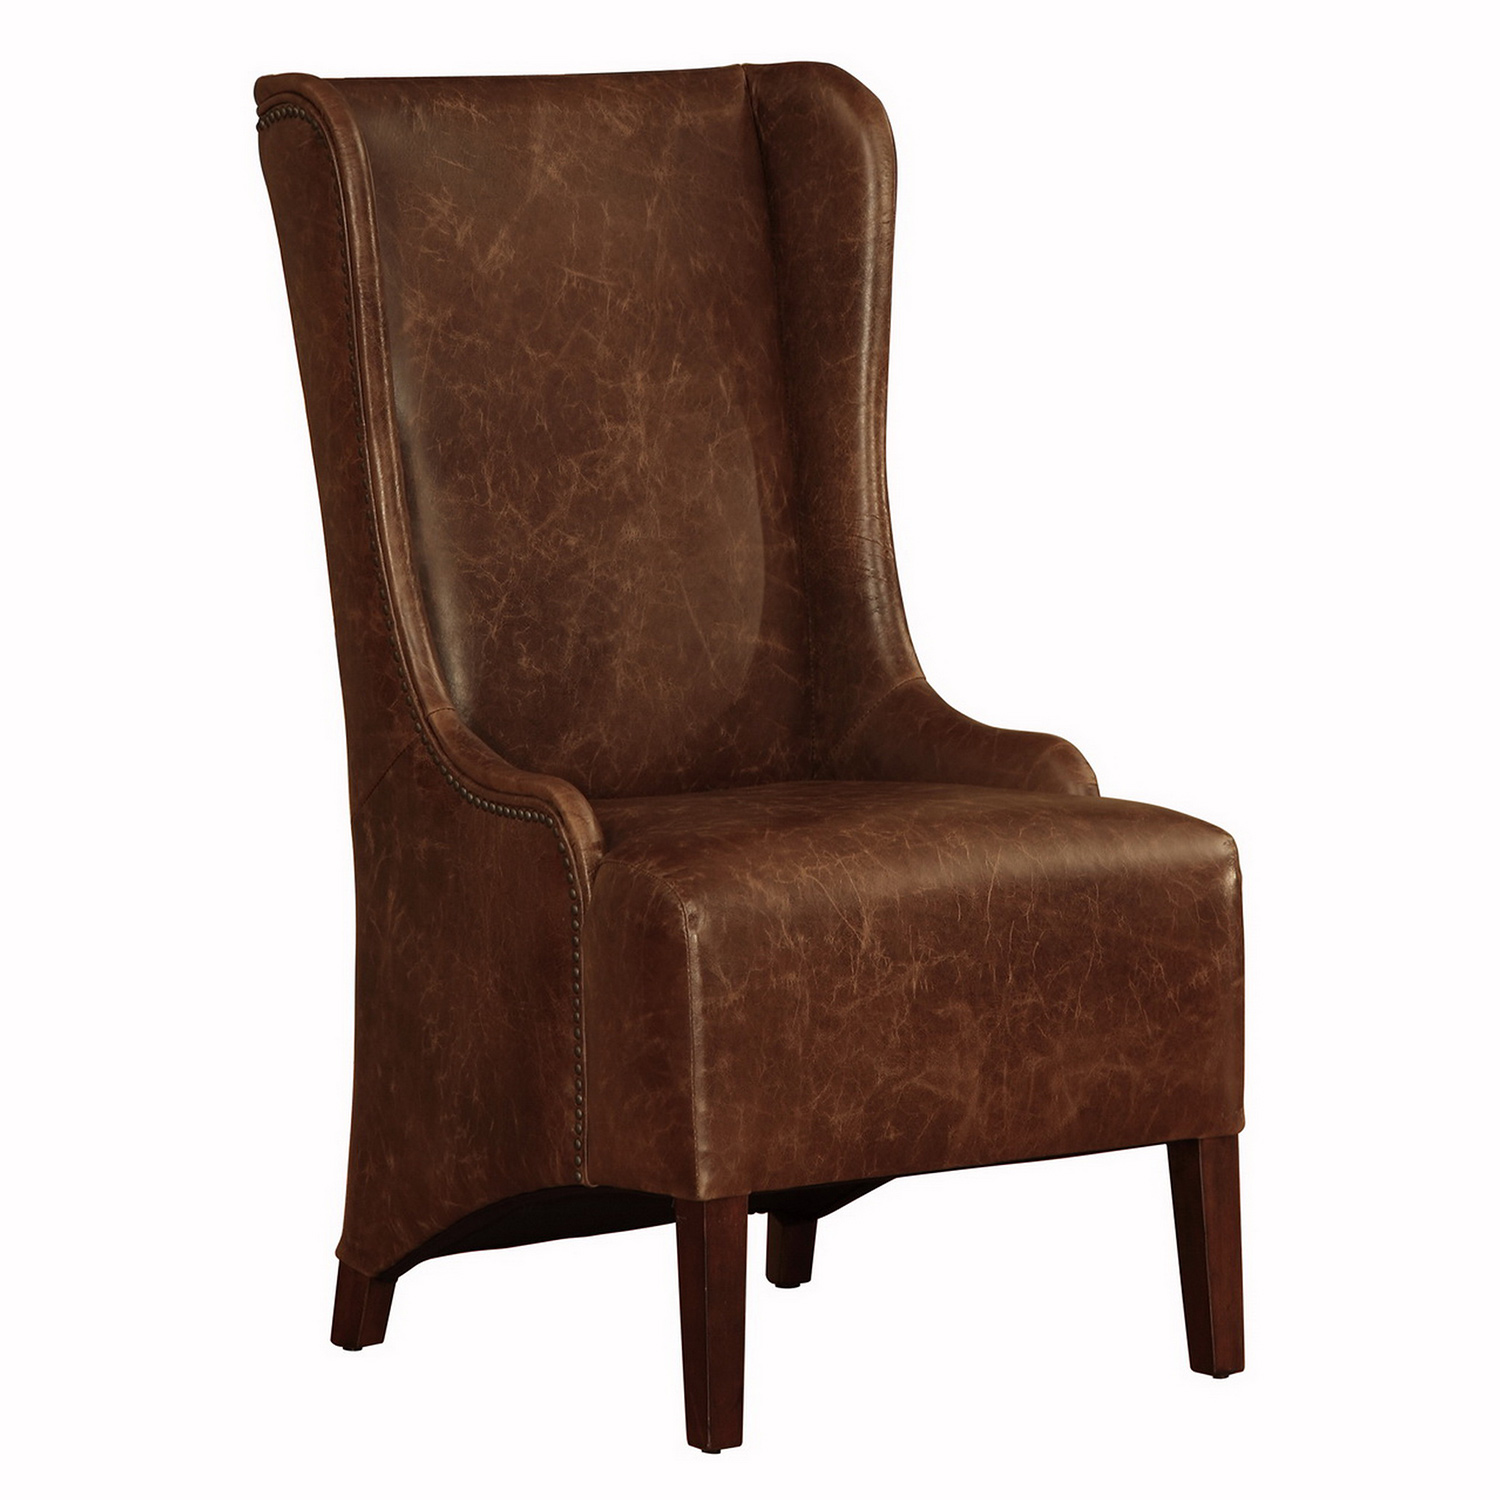 Wondrous Wessex High Back Dining Chair In Cocoa Brompton Brown Vintage Leather By Lazzaro Furniture Gamerscity Chair Design For Home Gamerscityorg